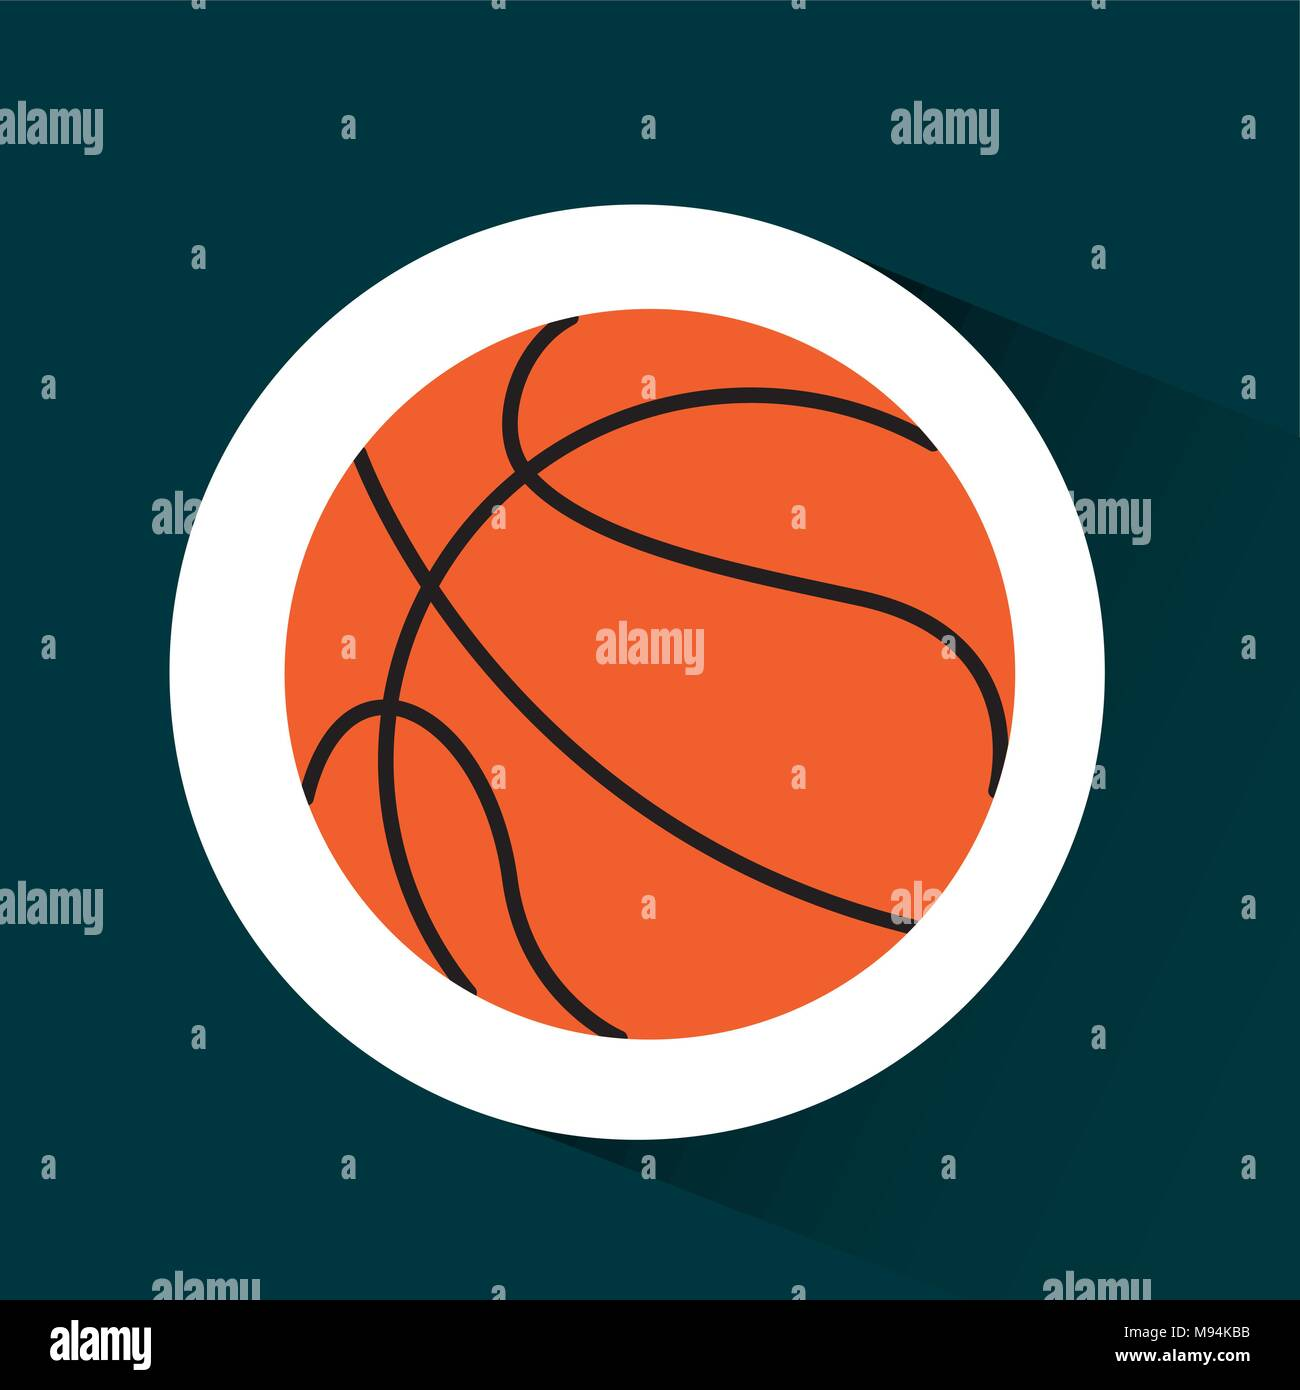 basketball sport design stock